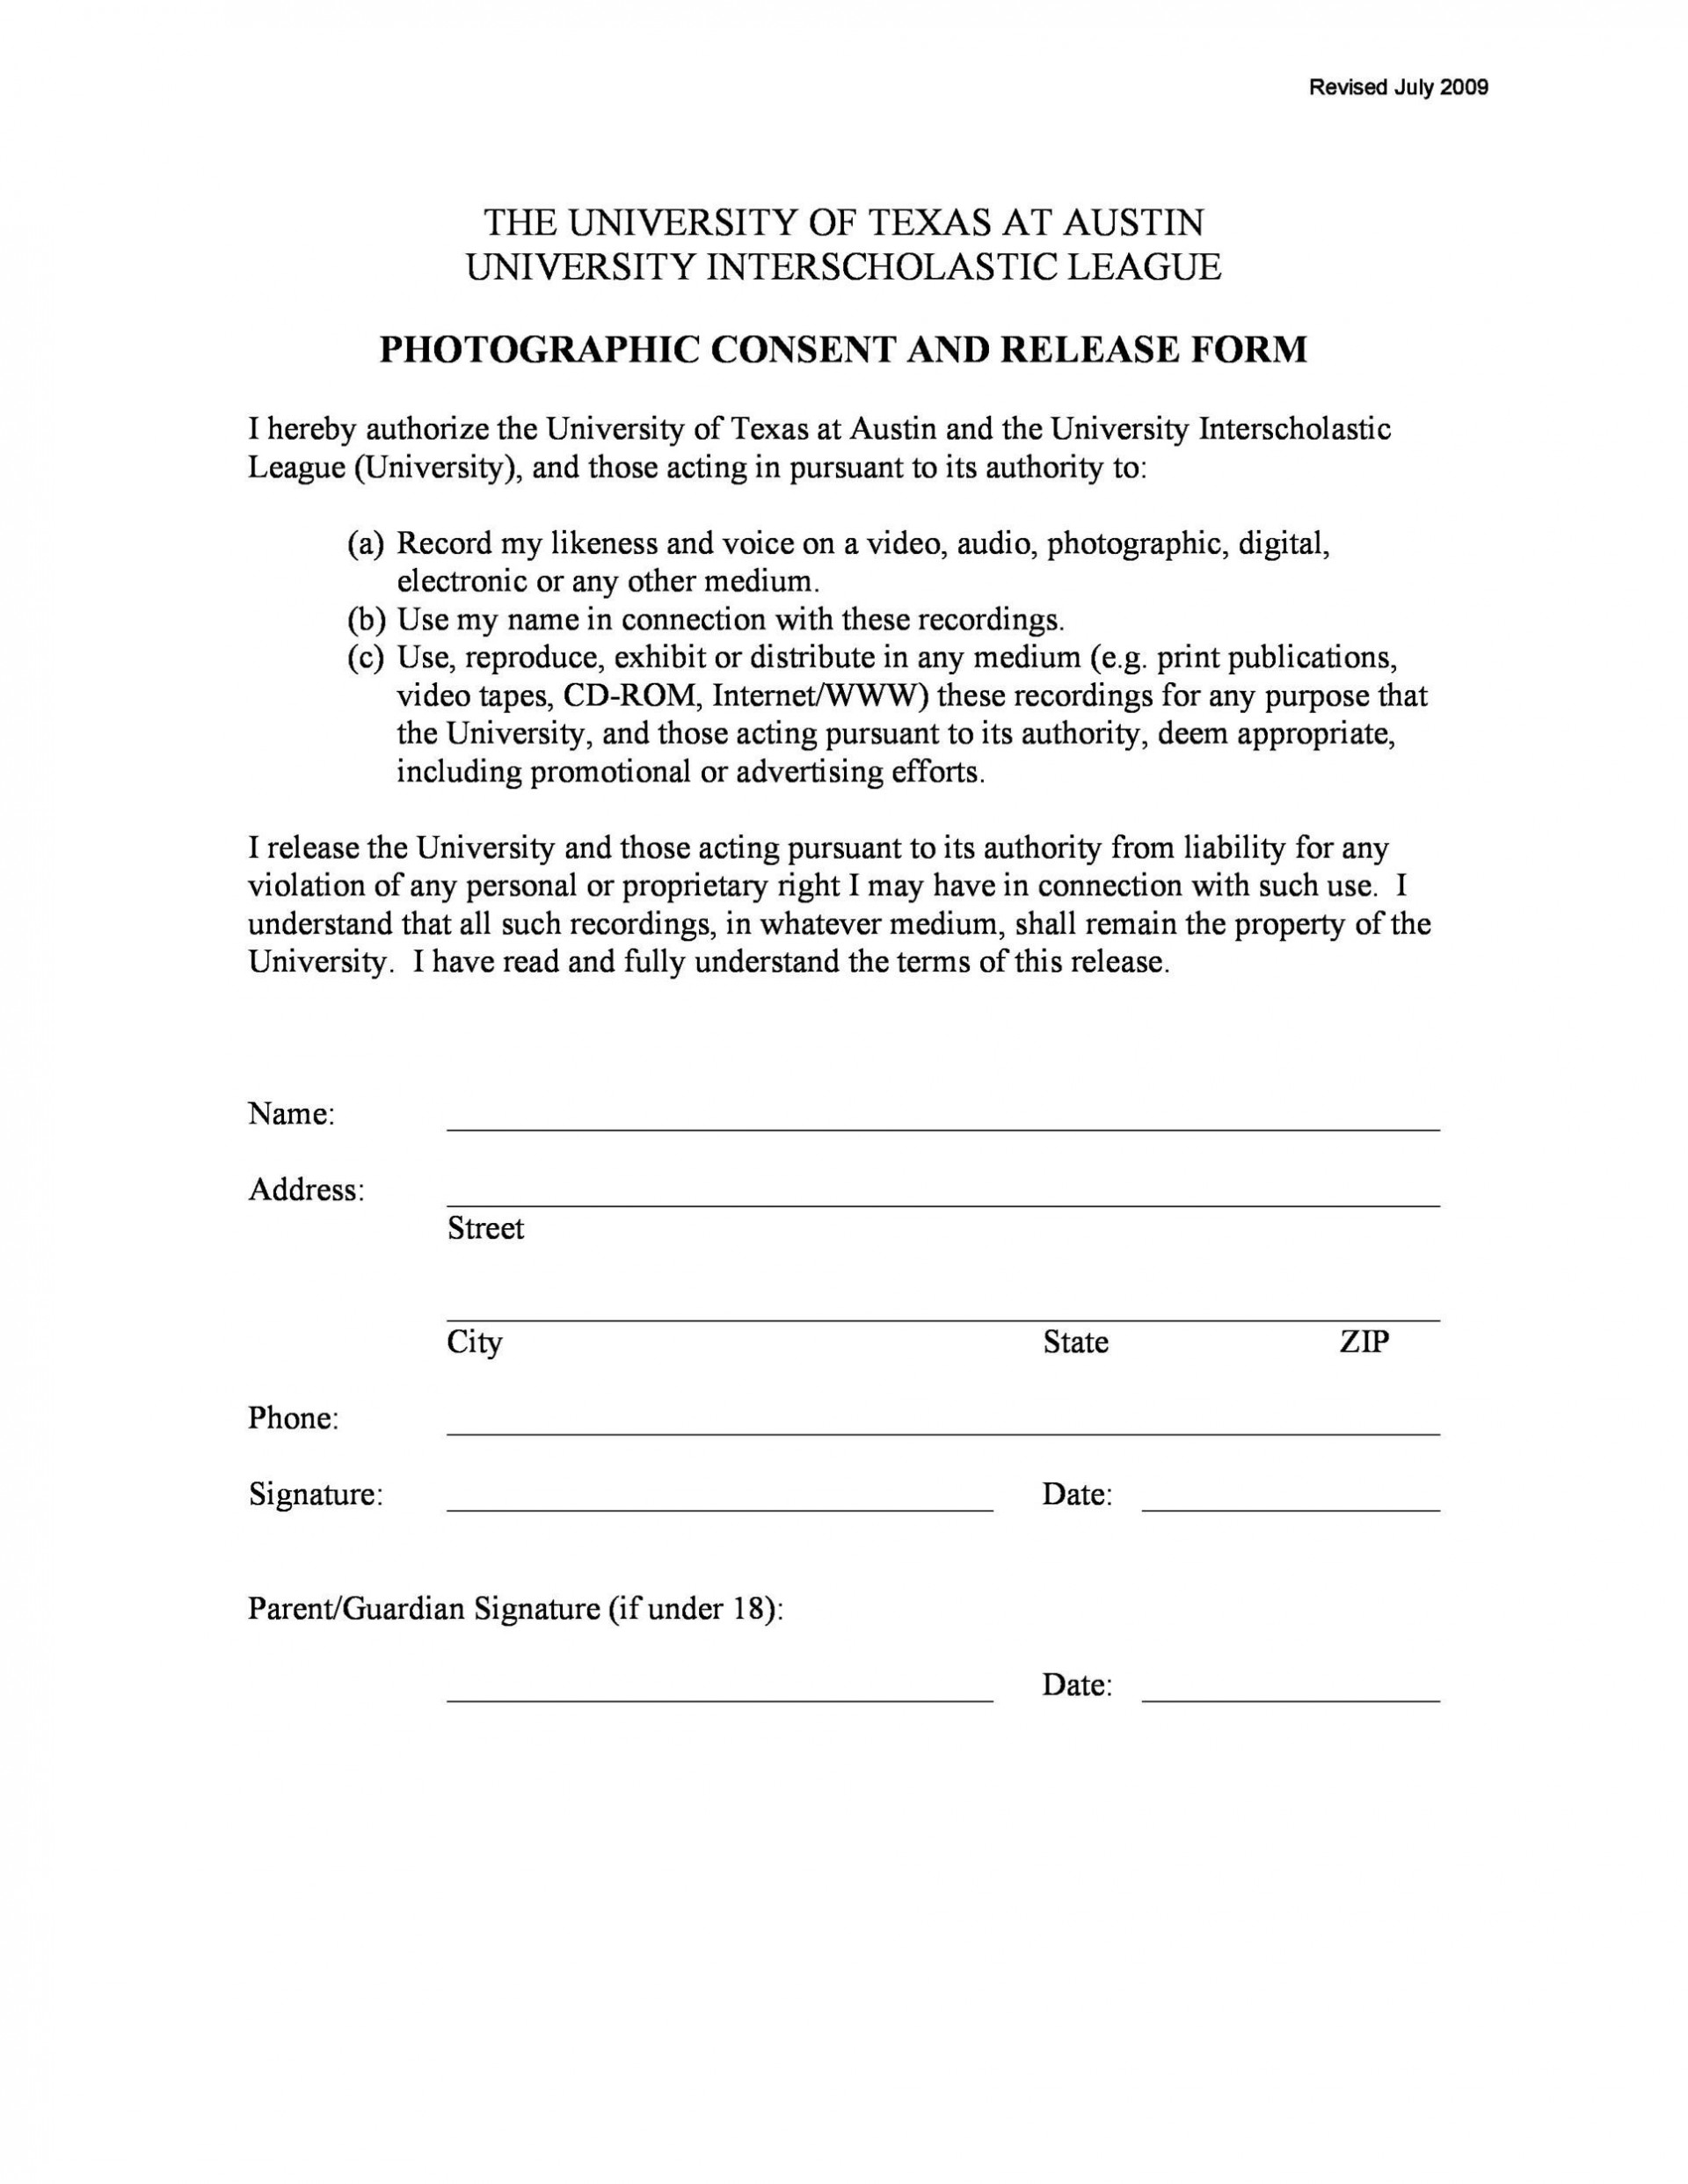 006 Incredible Photography Release Form Template High Def  Image Australia Canada1920